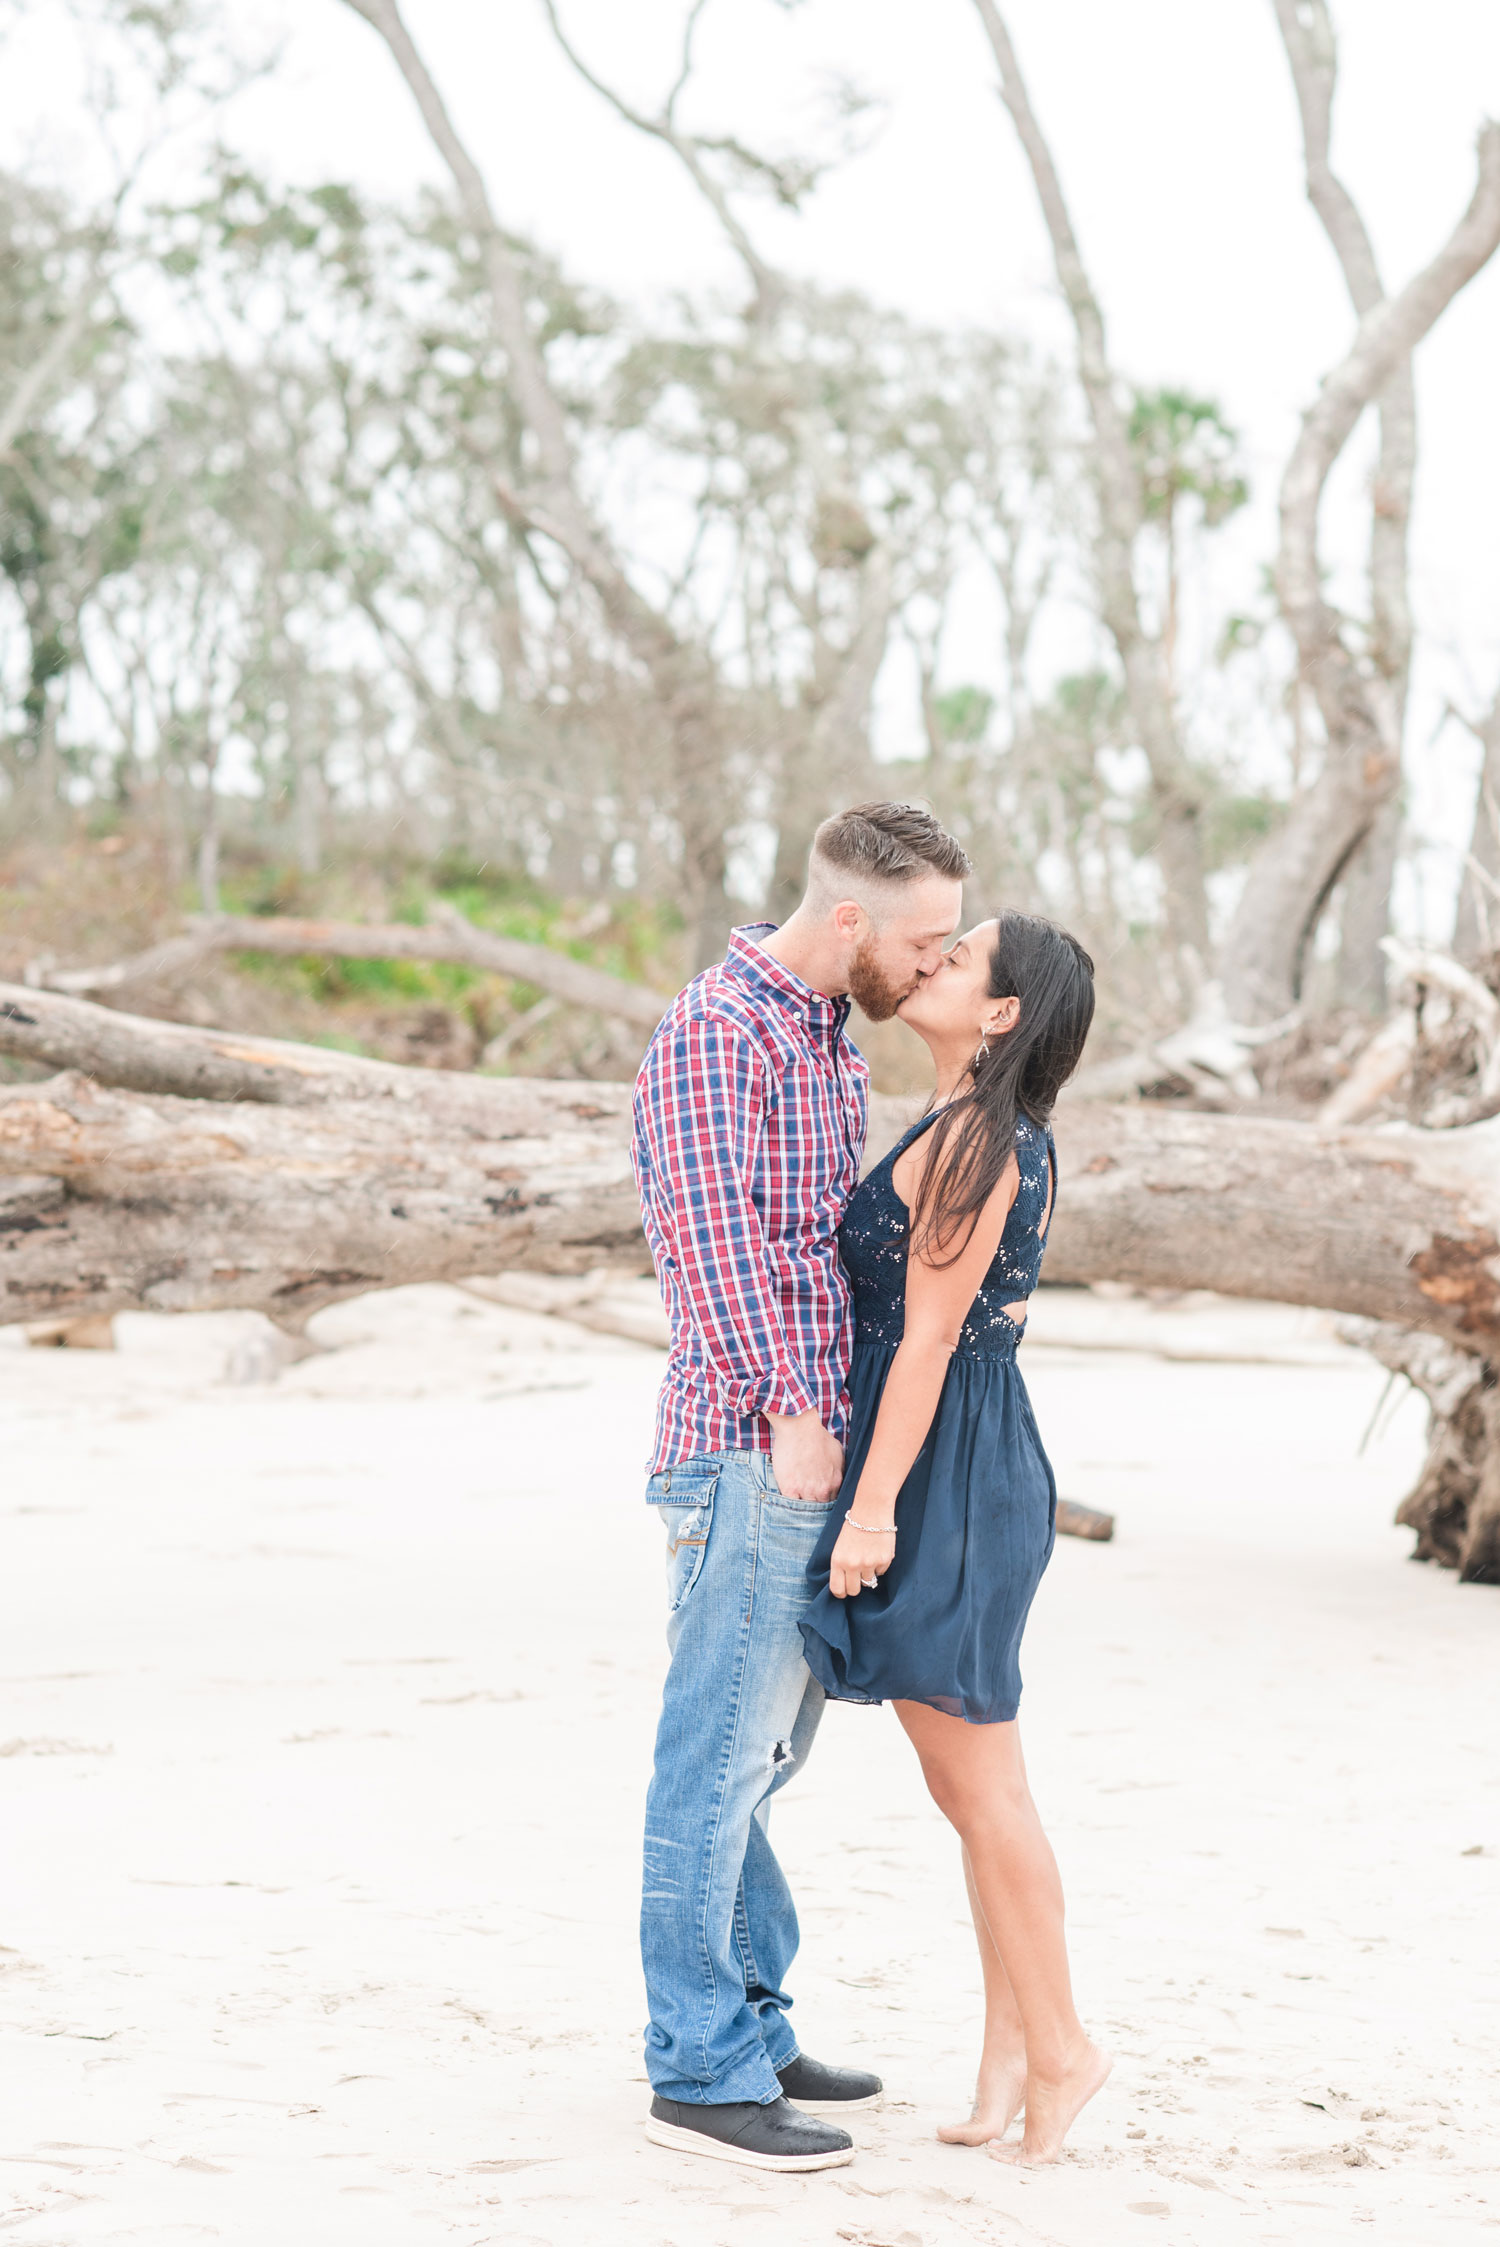 ©christineaustinphotography_Engagement_09.jpg